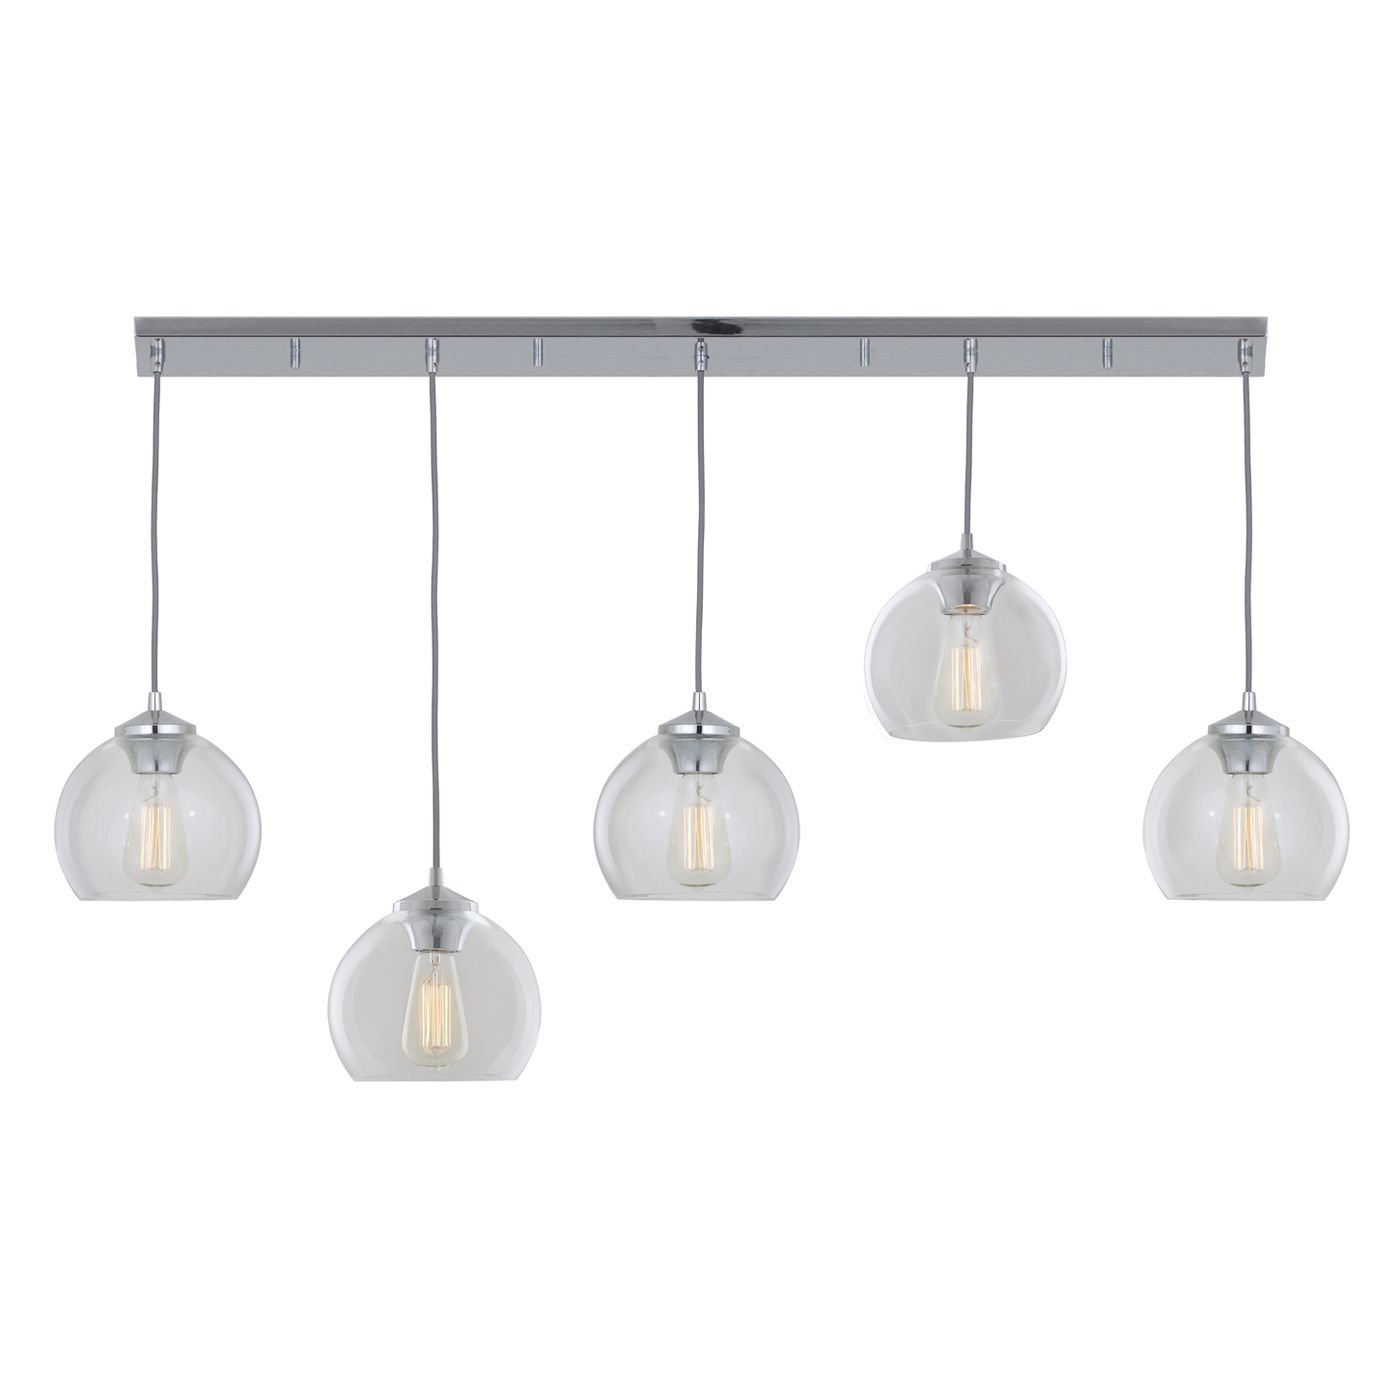 Shop dvi lighting dvp13202 oberon multi light pendant at lowes shop dvi lighting dvp13202 oberon multi light pendant at lowes canada find our selection of mozeypictures Image collections